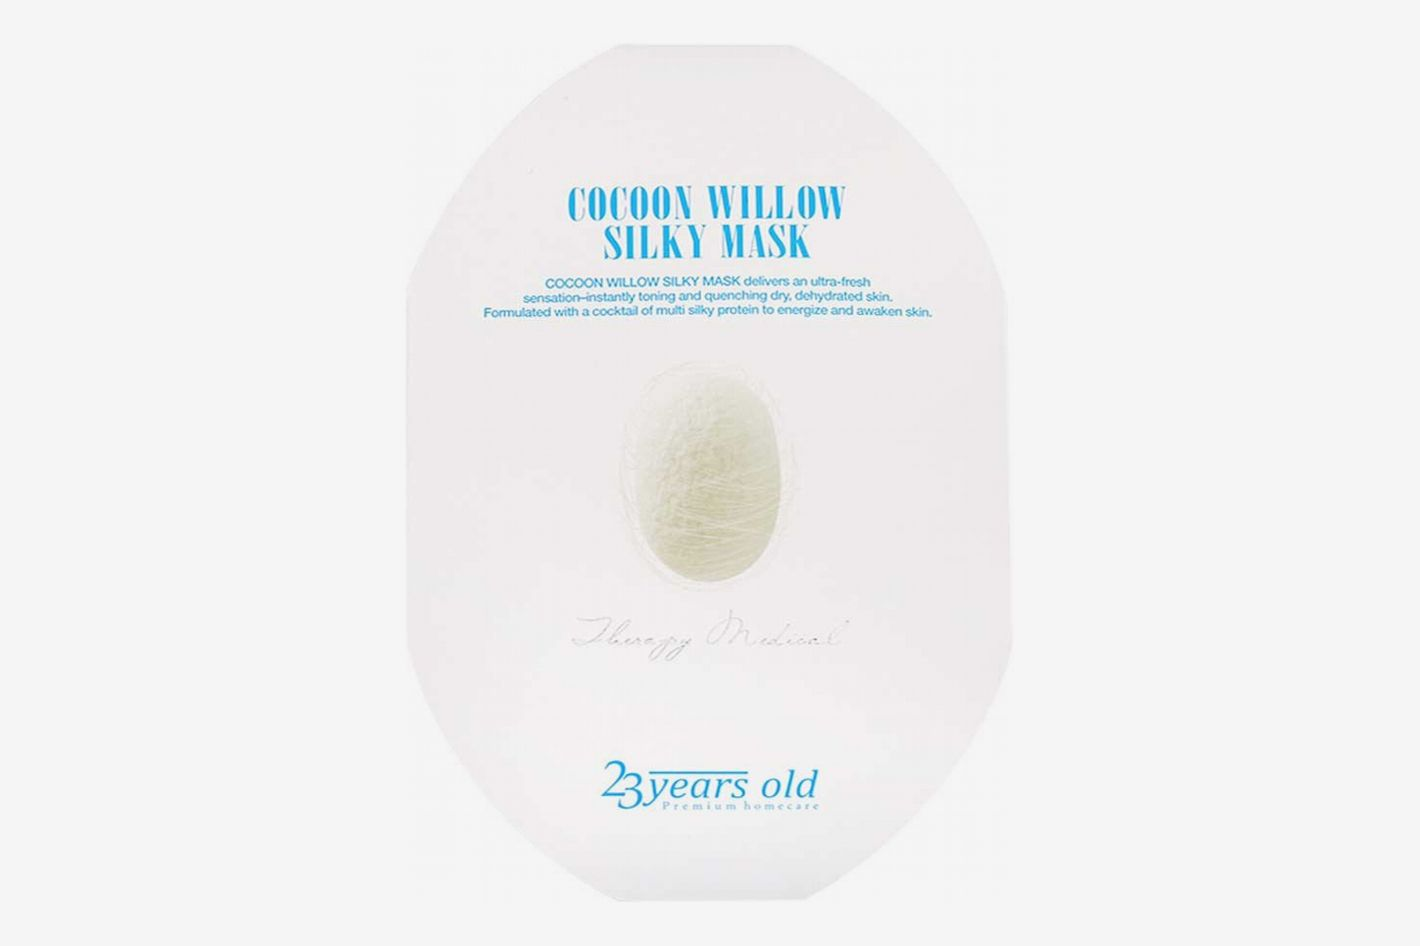 9. 23 Years Old Cocoon Willow Silky Mask (New entry)